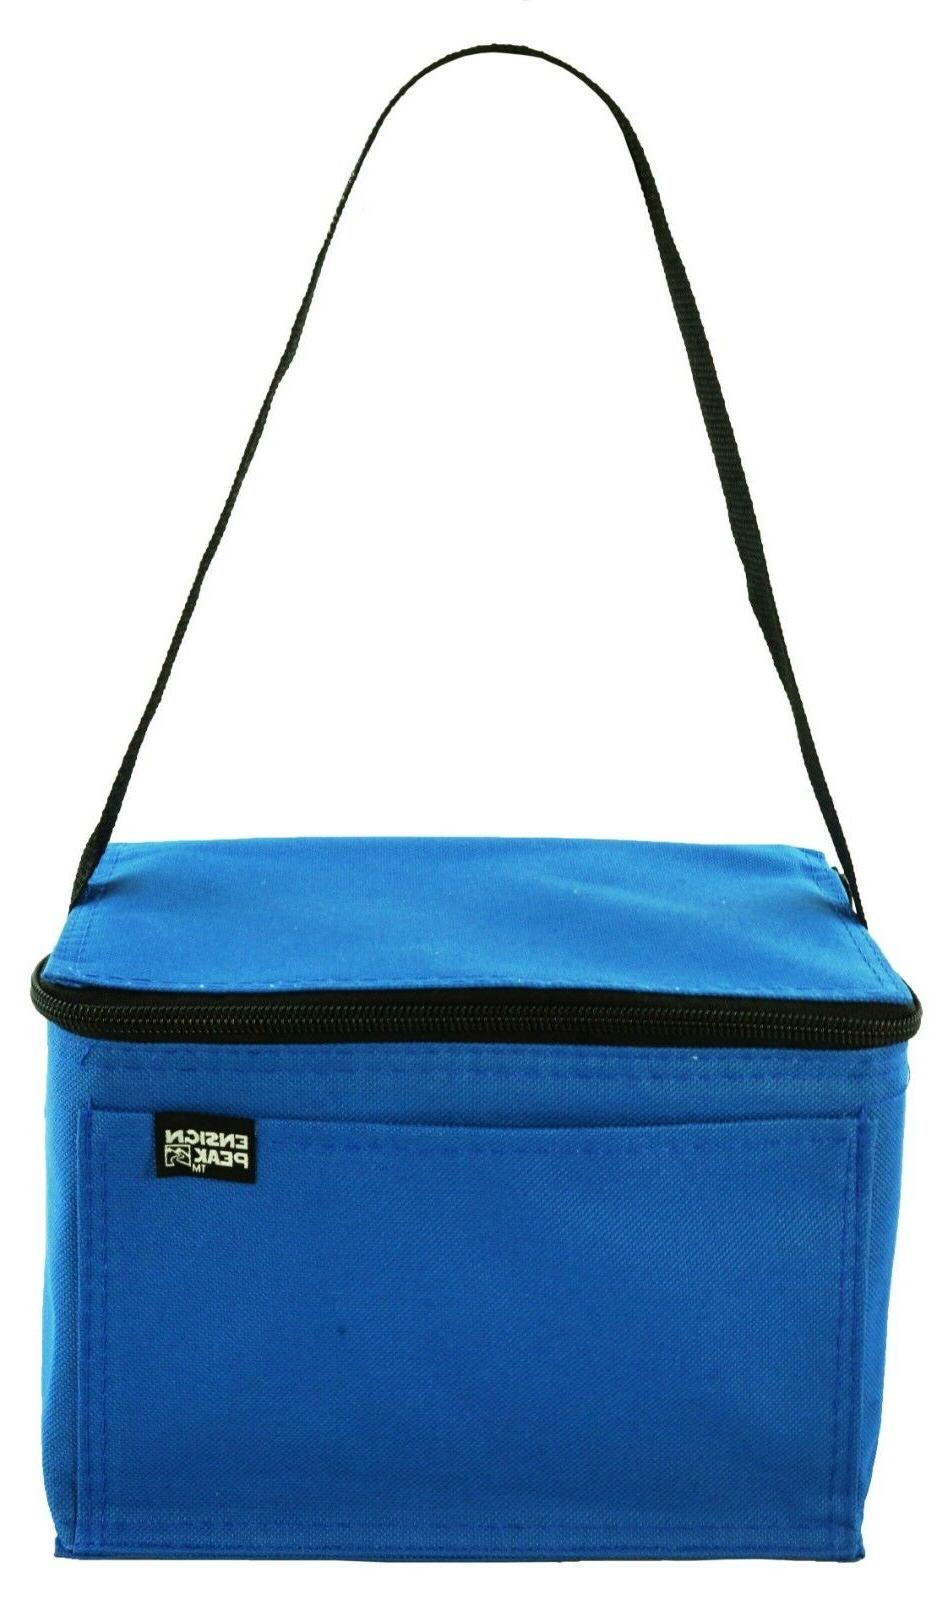 Ensign Peak 6-can Insulated Cooler with Leak Proof Lining